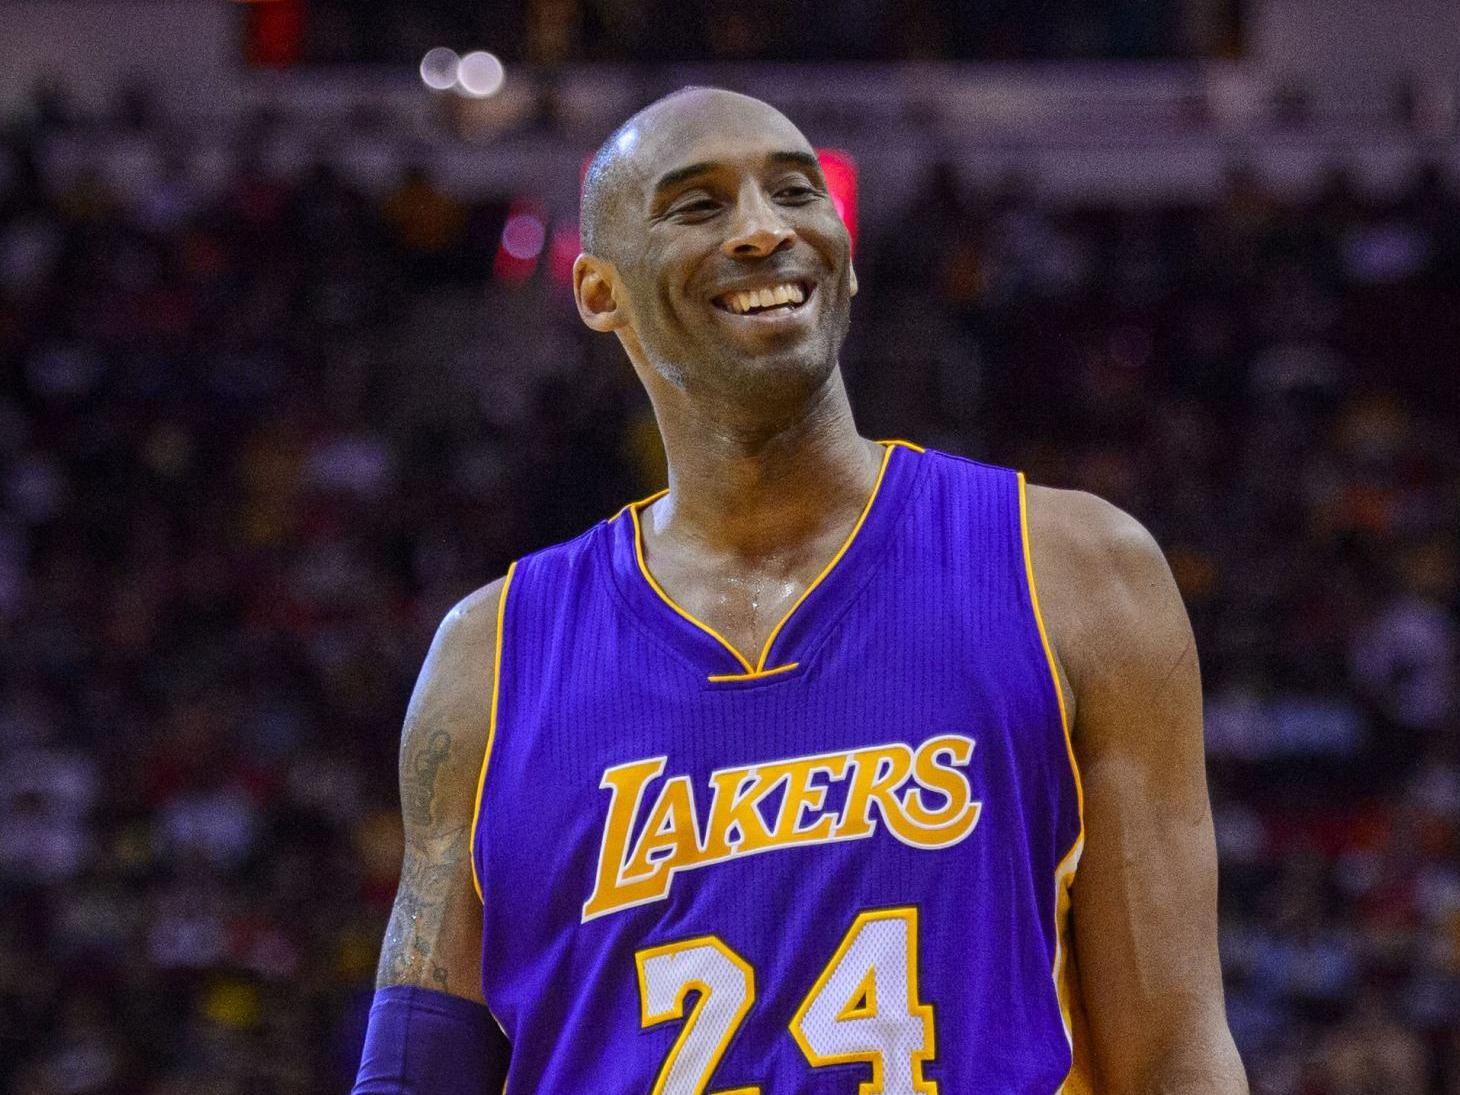 Pilot in Kobe Bryant crash may have been disoriented in fog, according to investigation documents